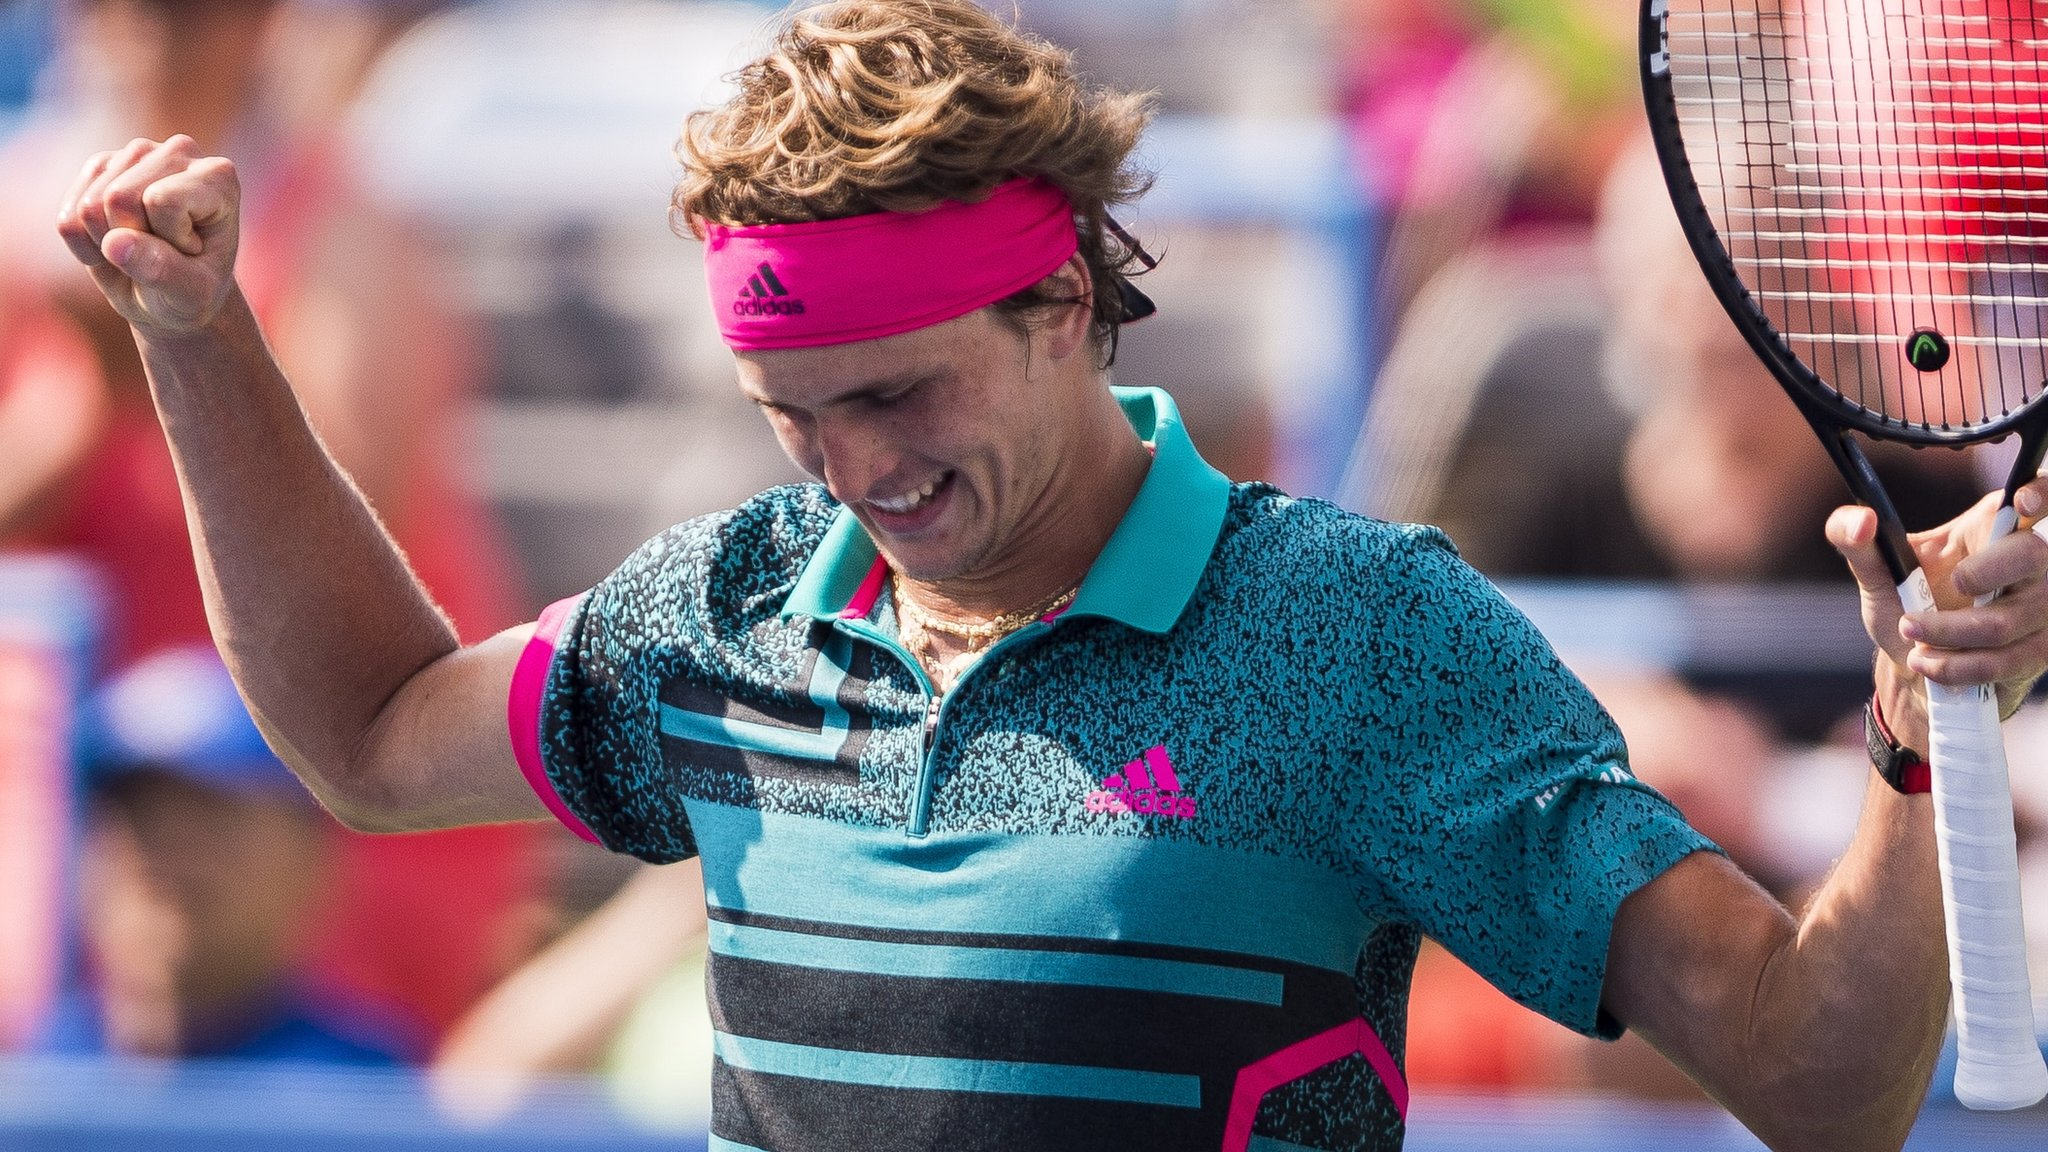 Washington Open: Alexander Zverev and Svetlana Kuznetsova win finals